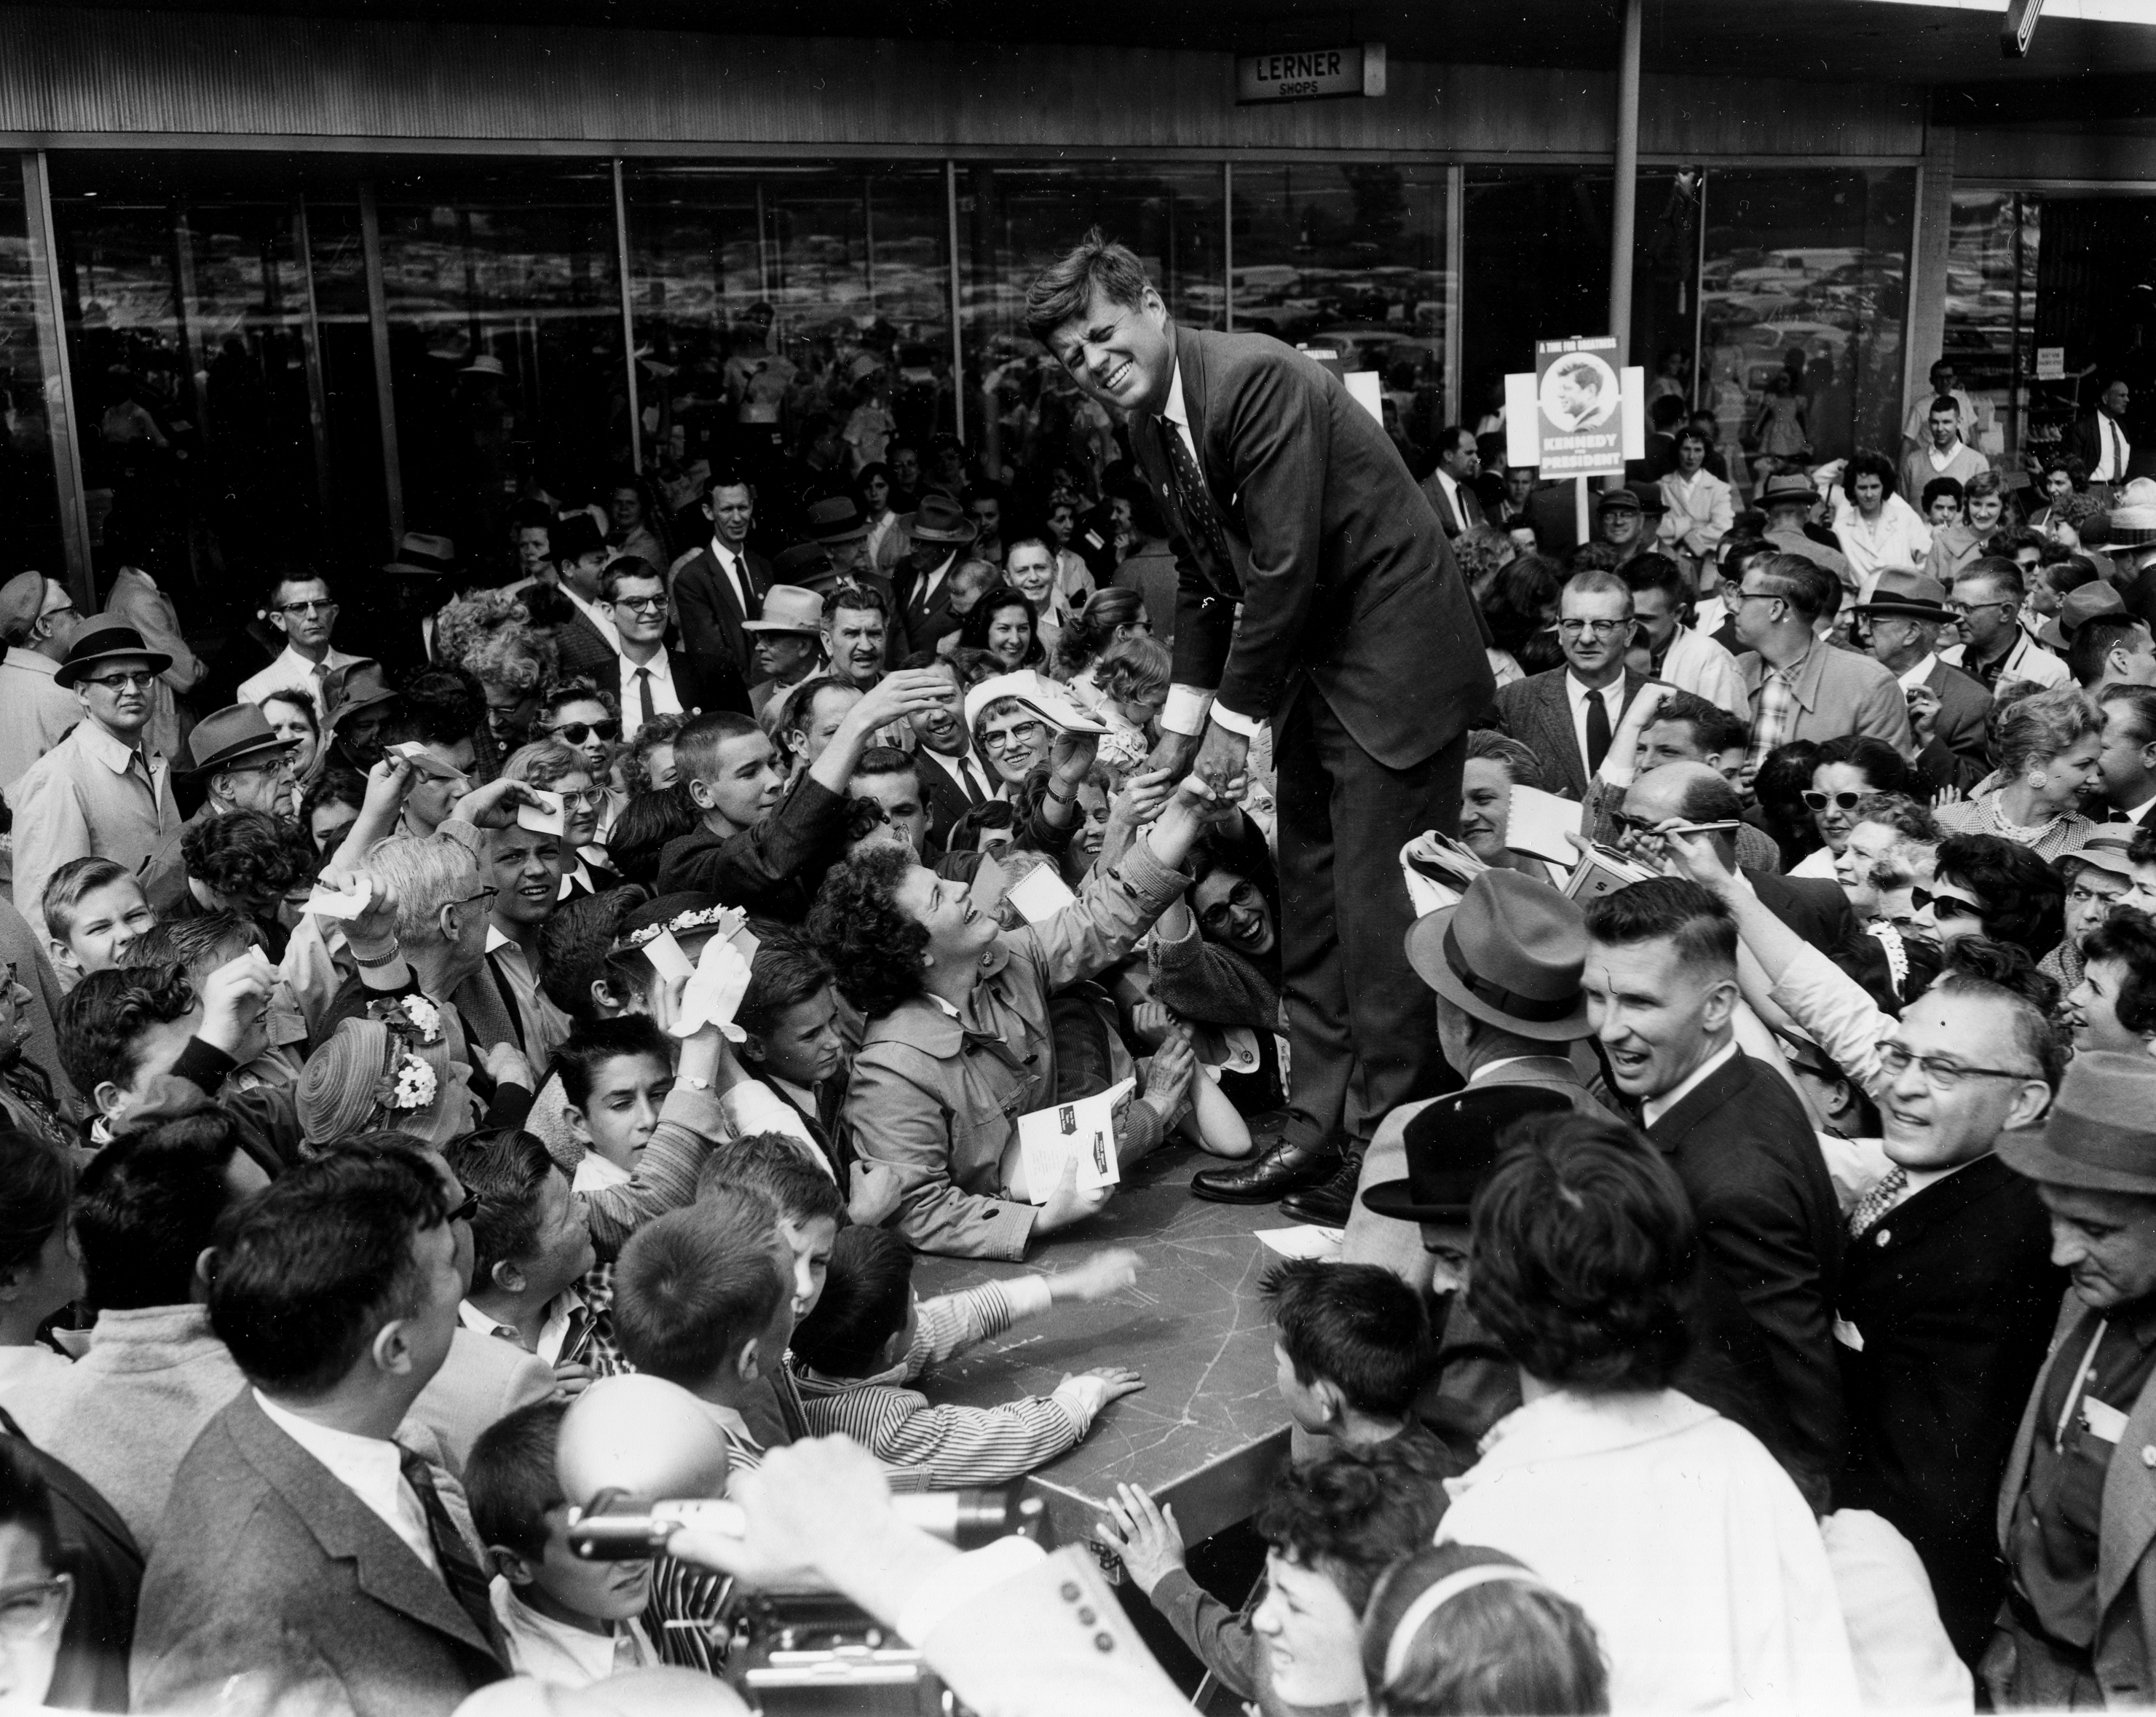 <div class='meta'><div class='origin-logo' data-origin='none'></div><span class='caption-text' data-credit='AP'>U.S. Senator John F. Kennedy, D-Mass., stands on a platform as he shakes hands with a crowd of people that greeted him at Westview shopping center in Baltimore, Md., May 13, 1960.</span></div>